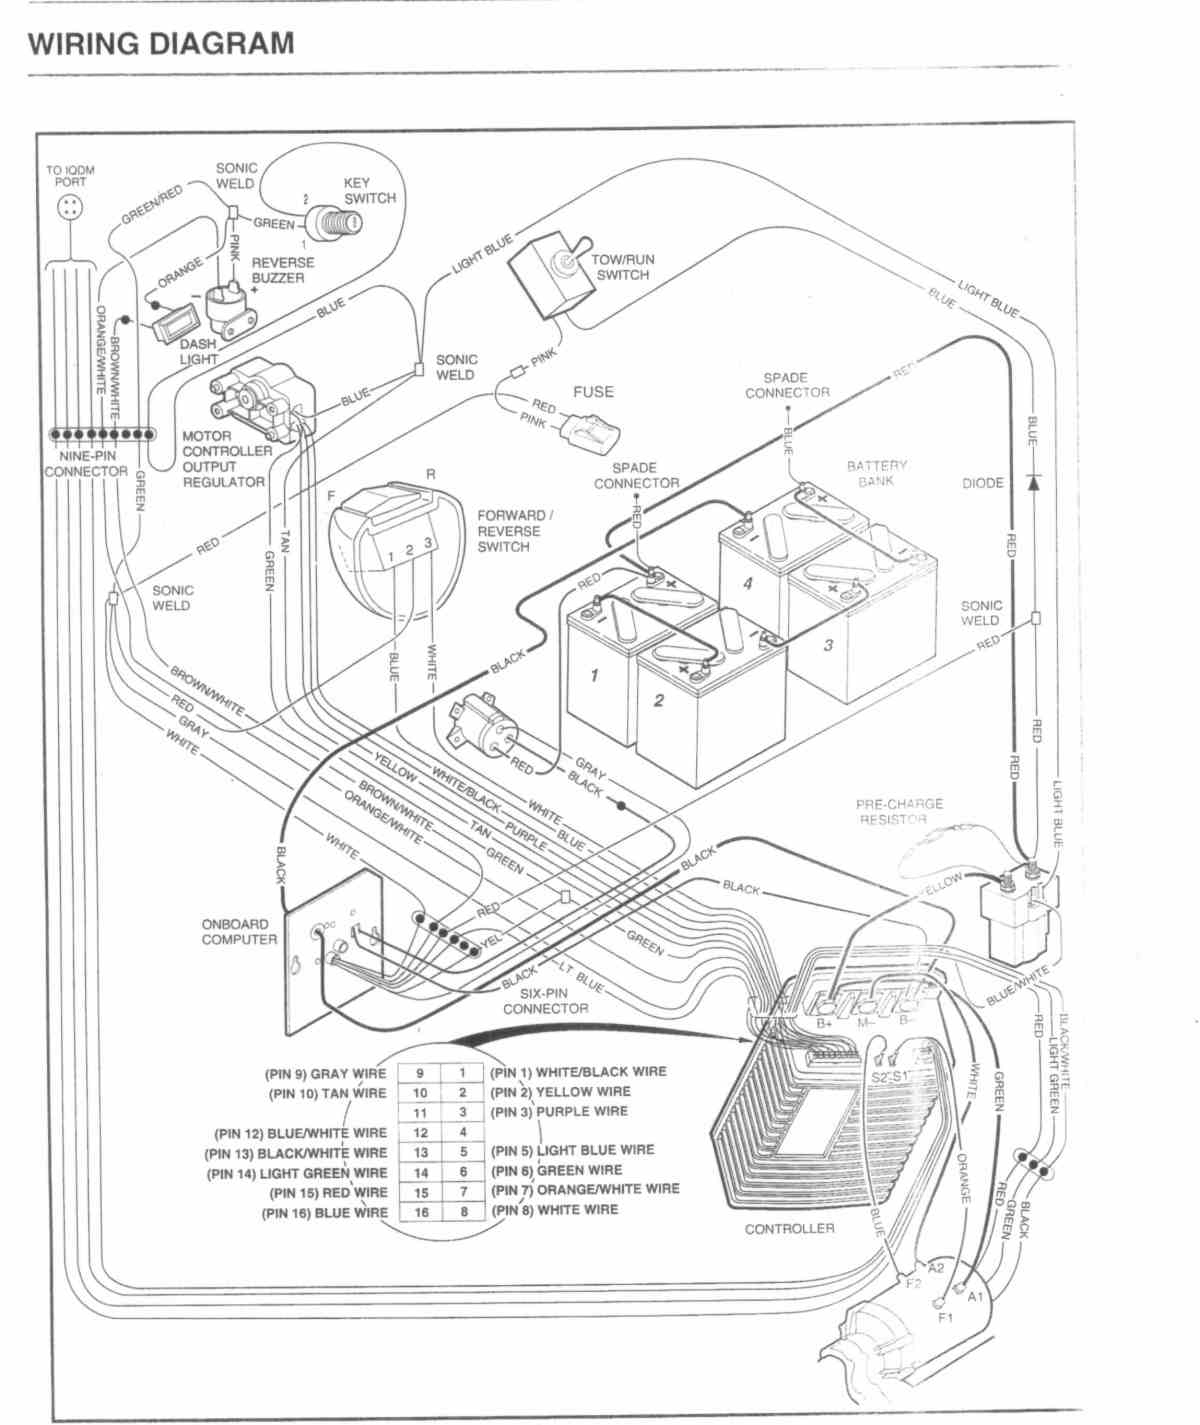 36 Volt Club Car Wiring Diagram Precedent | Manual E-Books - Club Car Precedent Wiring Diagram